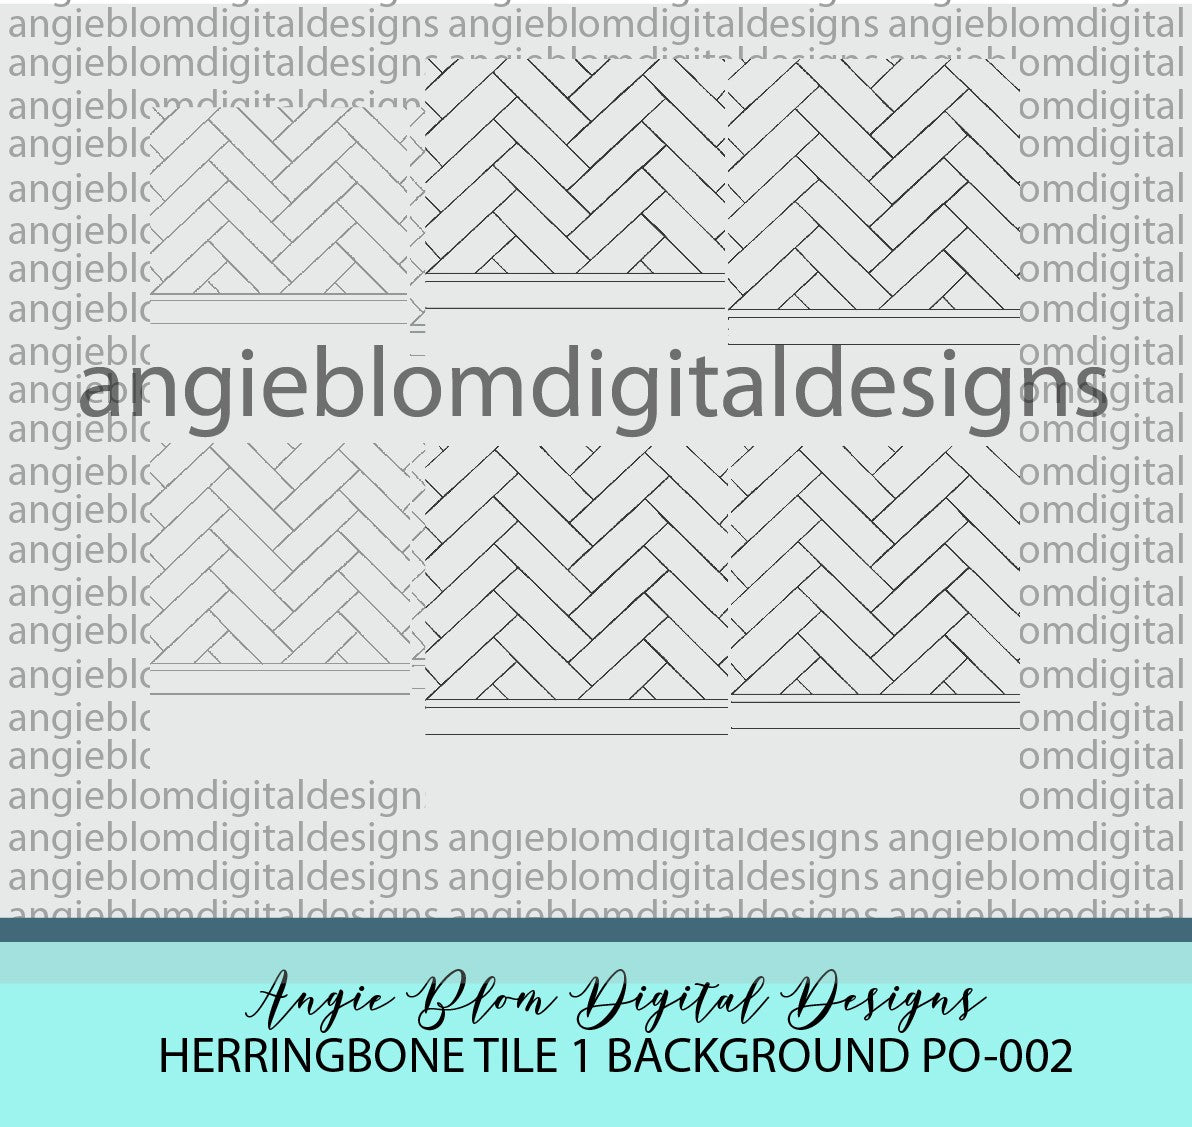 Herringbone Tile 1 Background